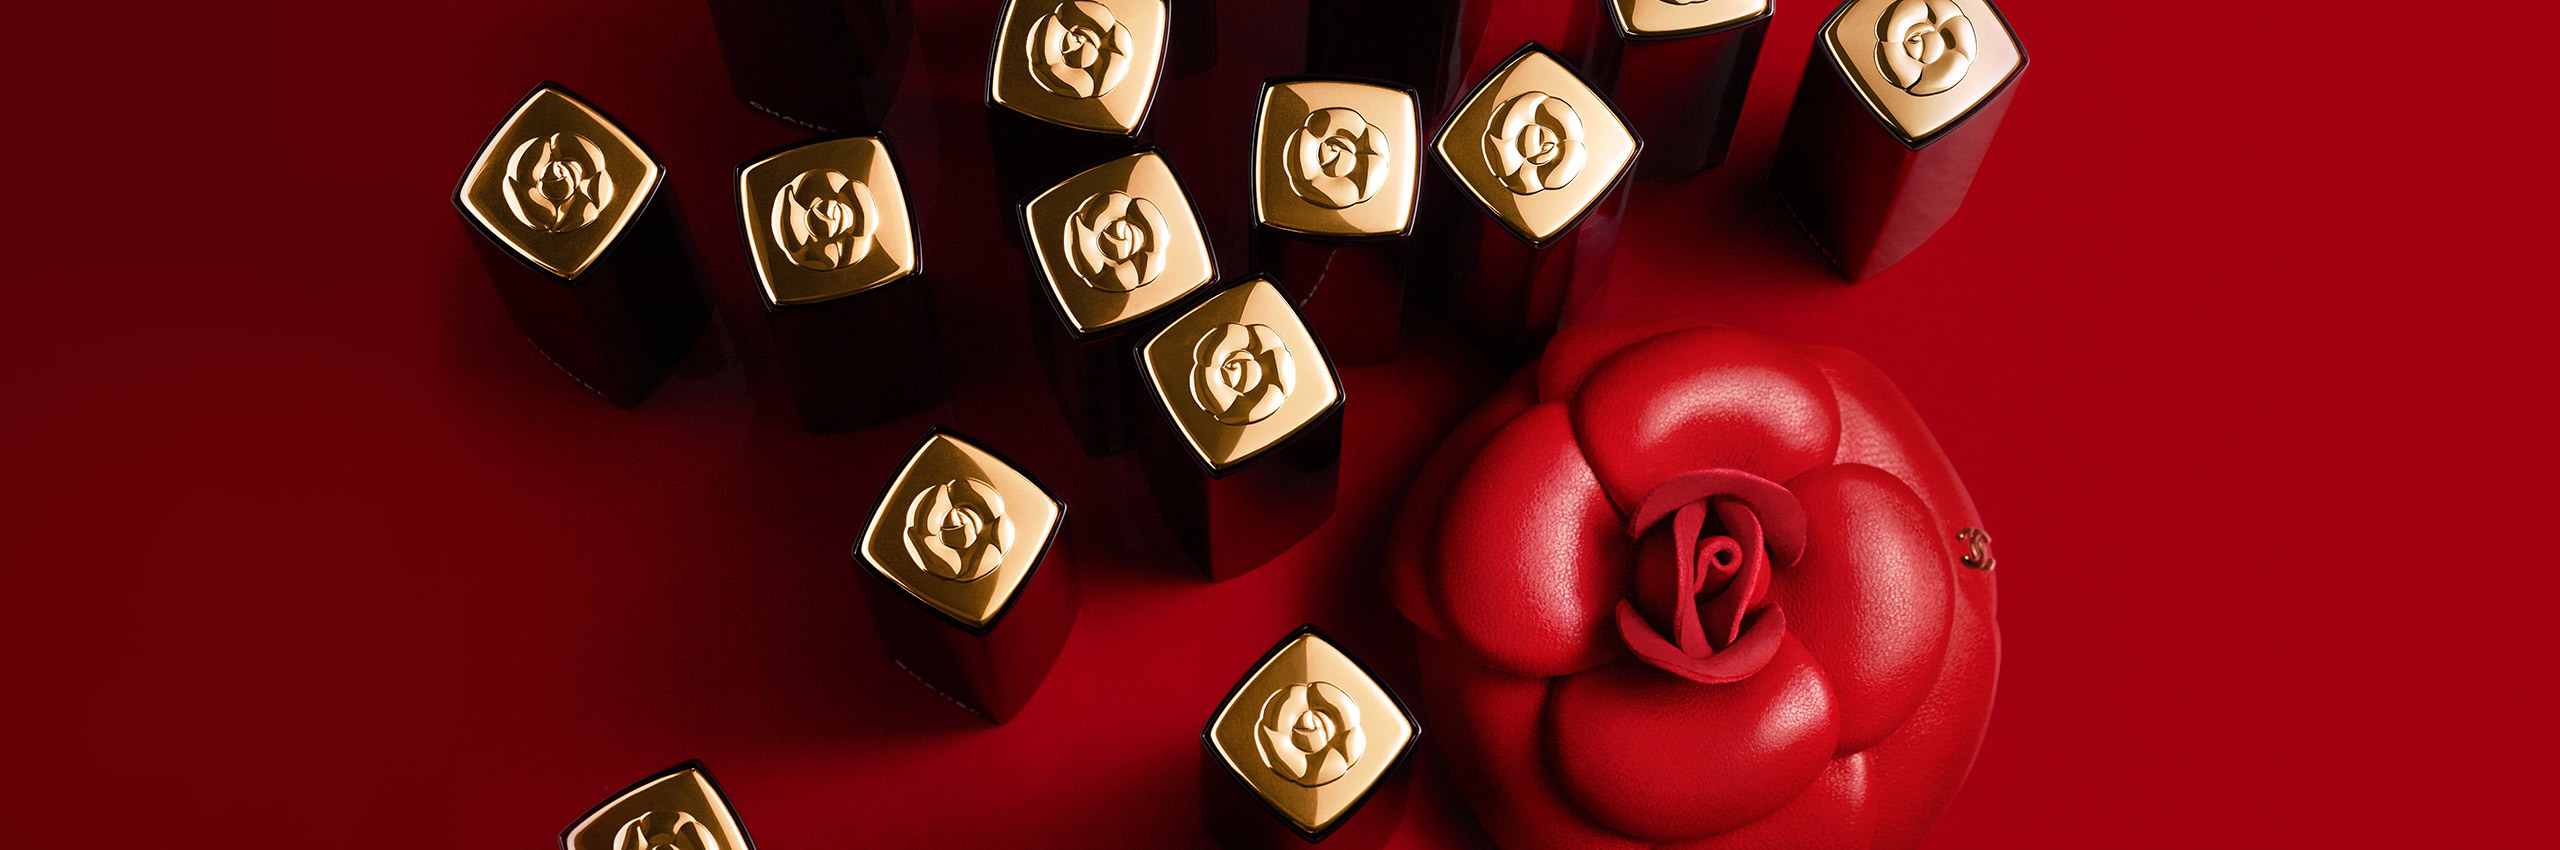 CHANEL ROUGE ALLURE CAME\'LIA ☆ Limited Edition_e0303431_16504031.jpg